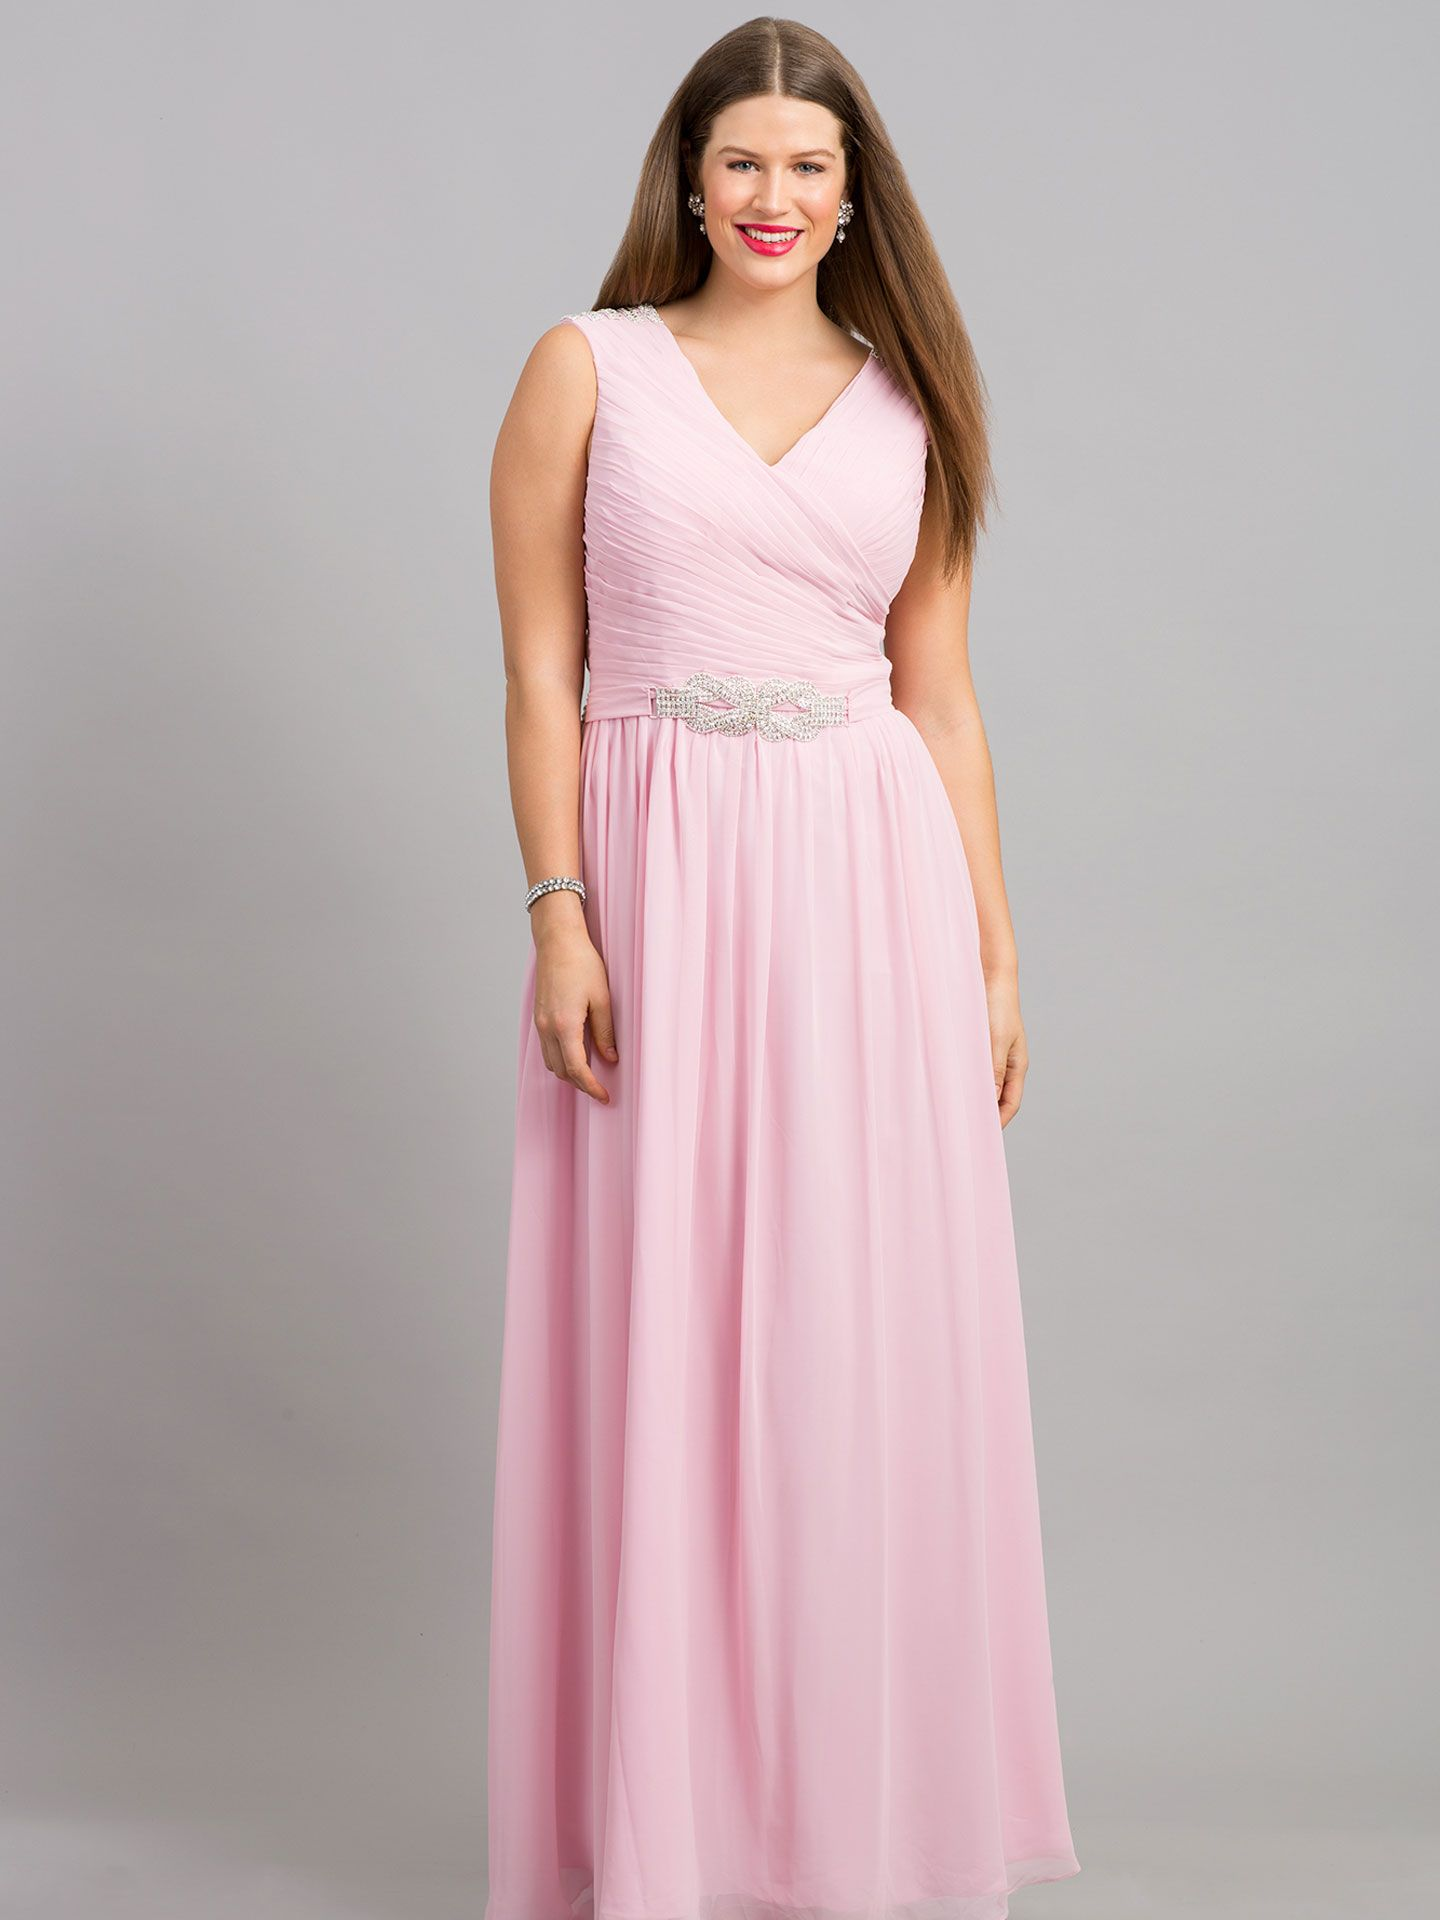 hot af plus size prom dresses that will slay prom night amazing